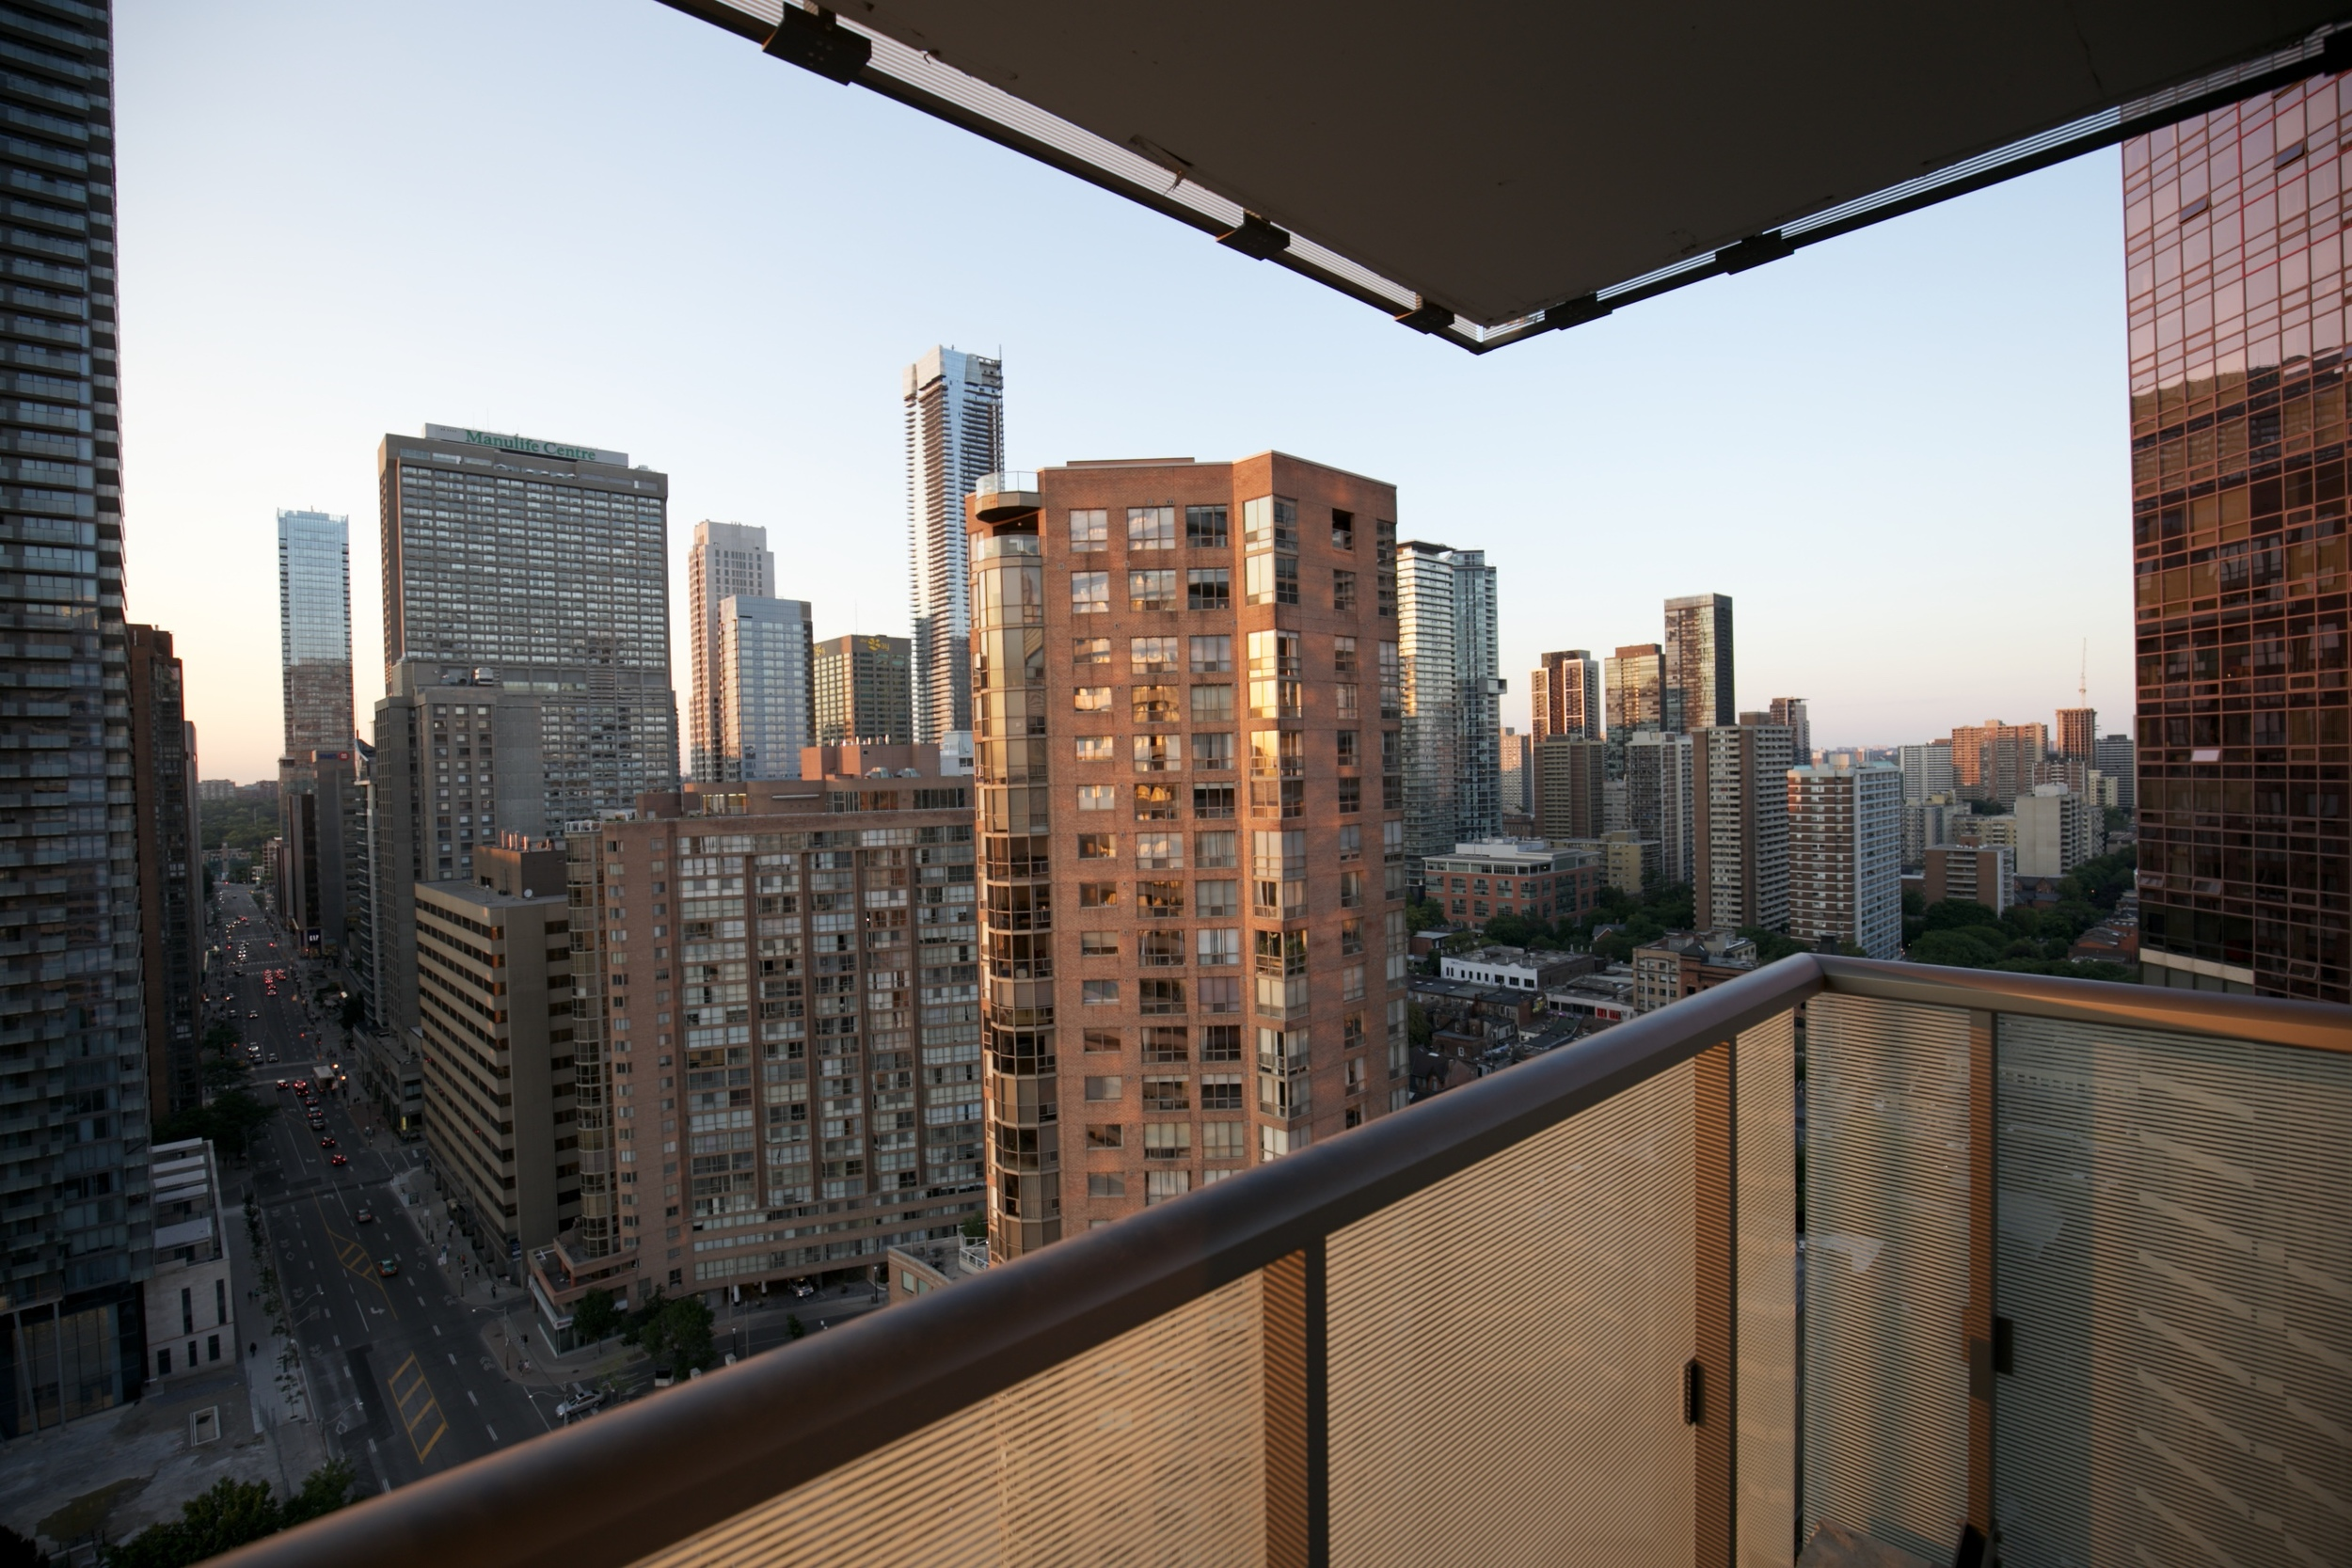 View from my balcony onto the high rise buildings.